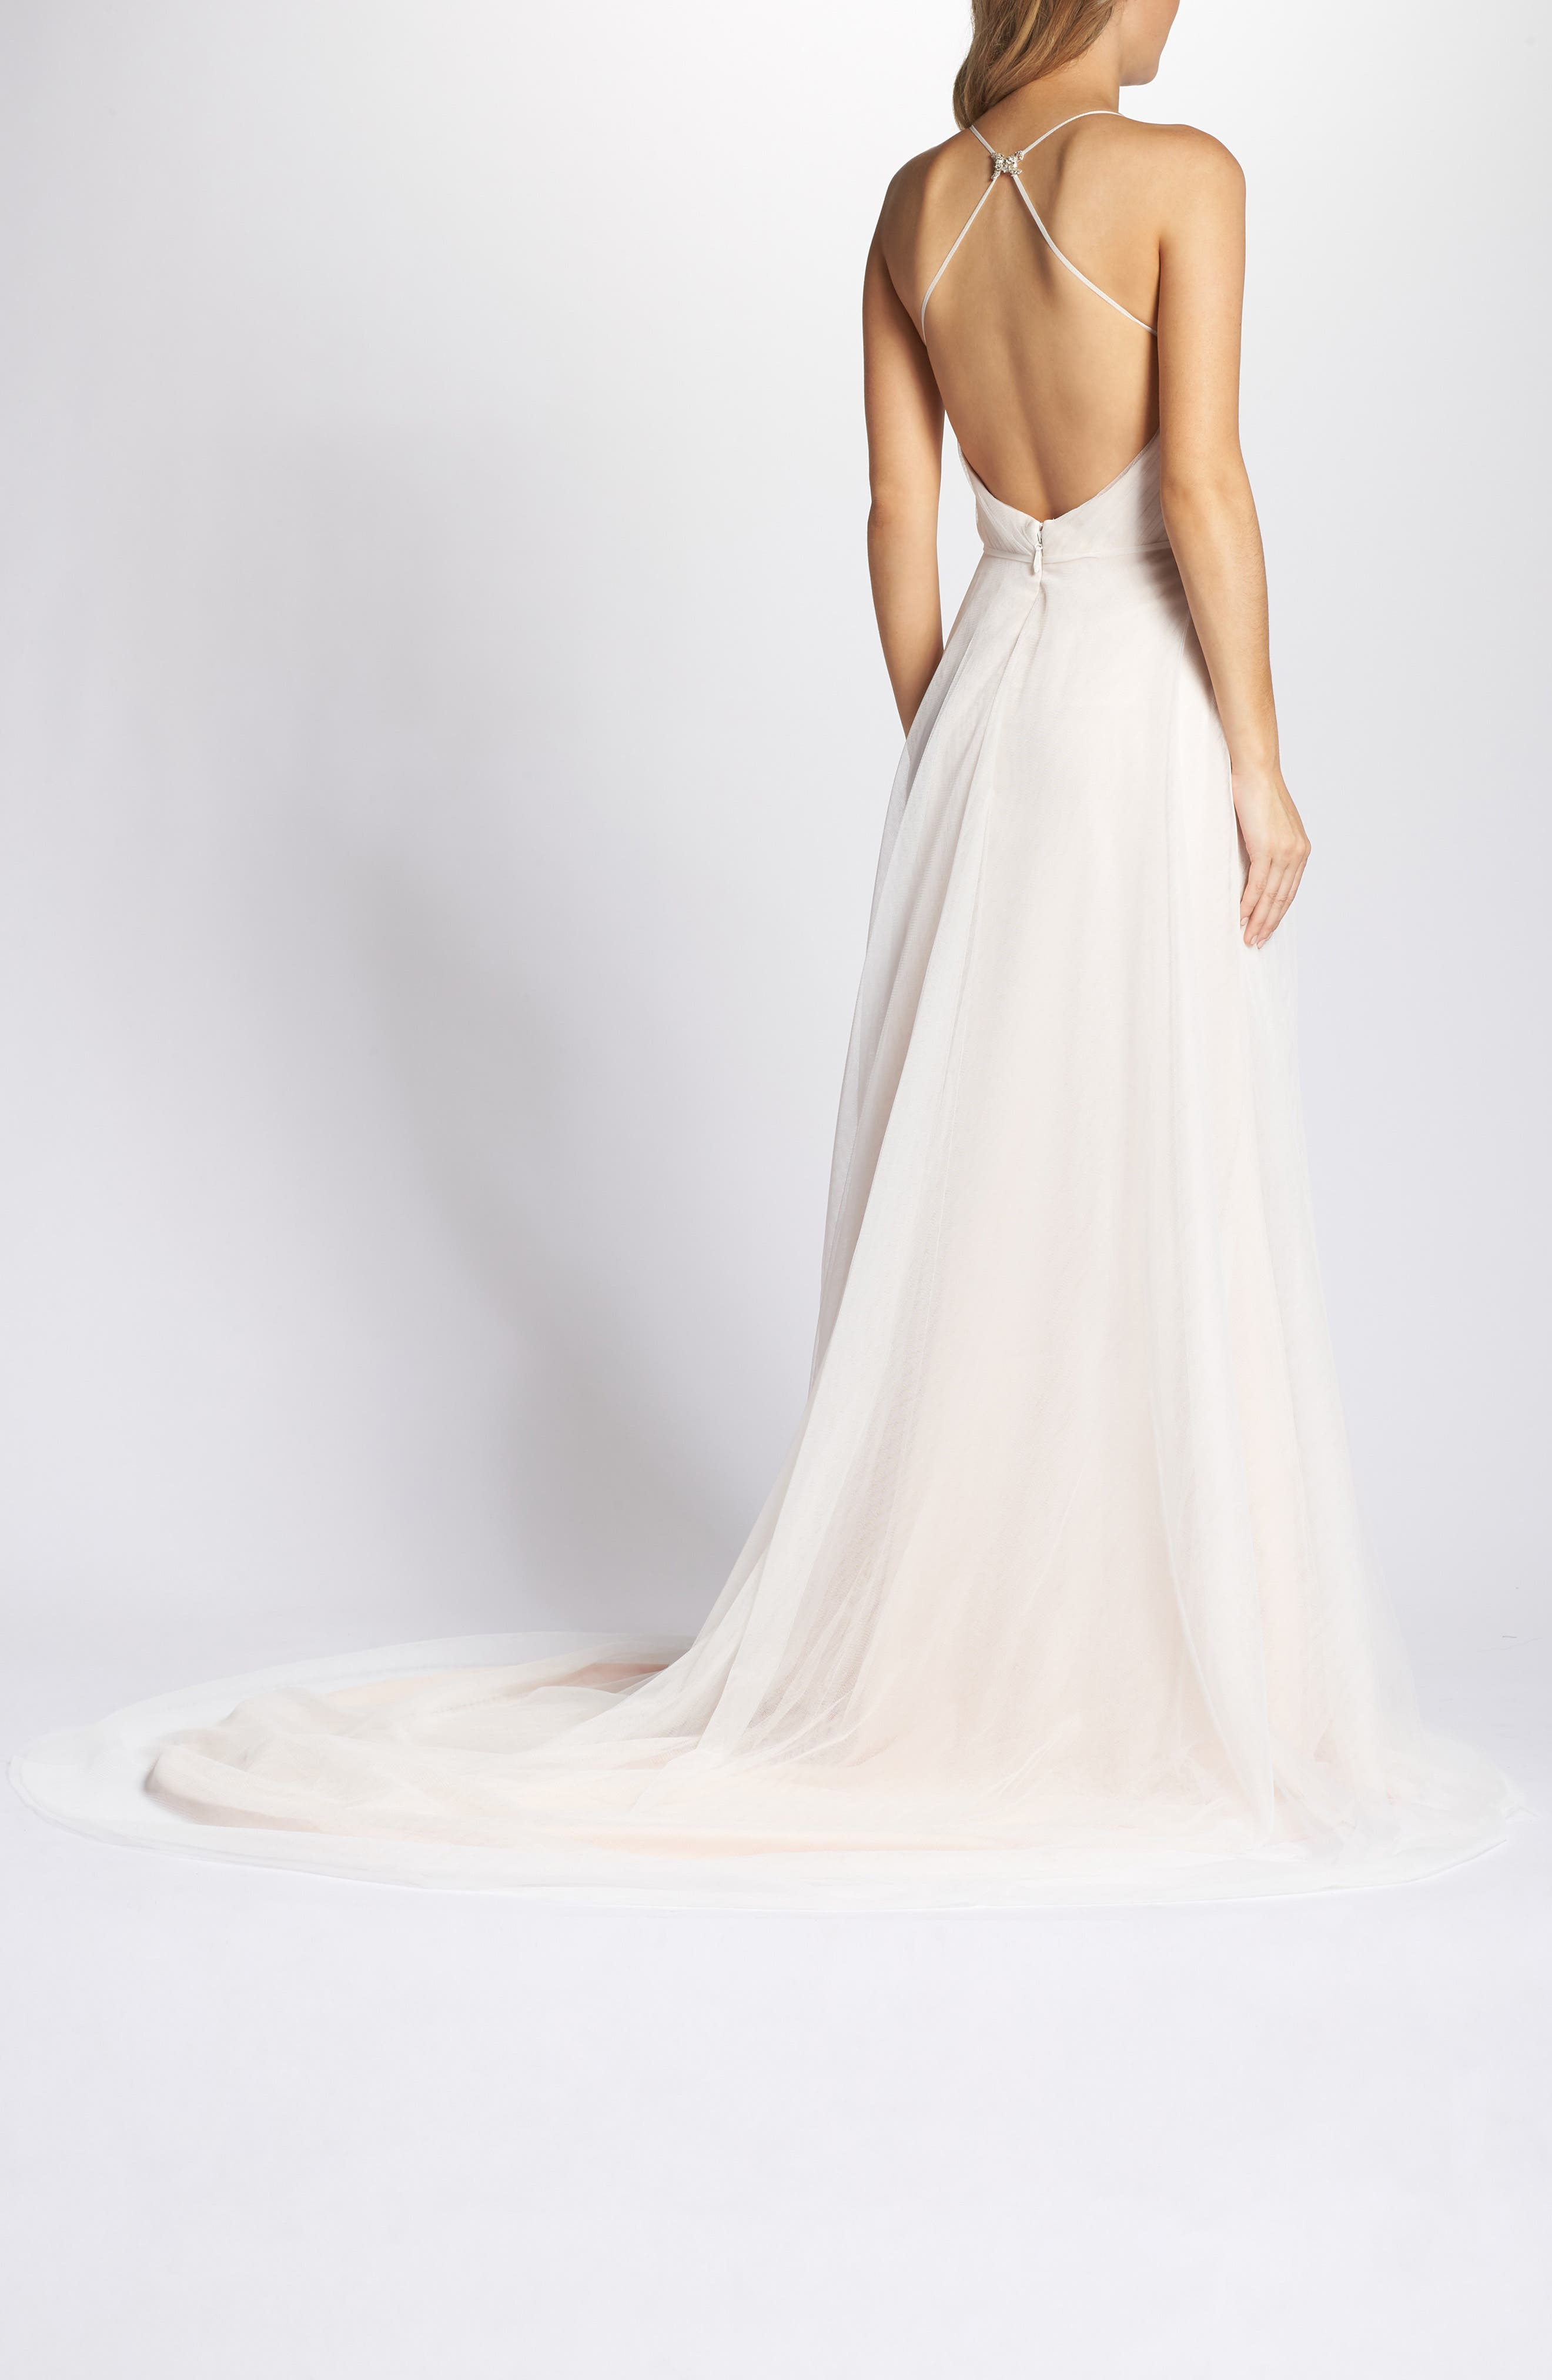 K'Mich Weddings - wedding planning - affordable wedding dresses - Ti Adora by Allison Webb Plunging A-Line Gown - Nordstrom